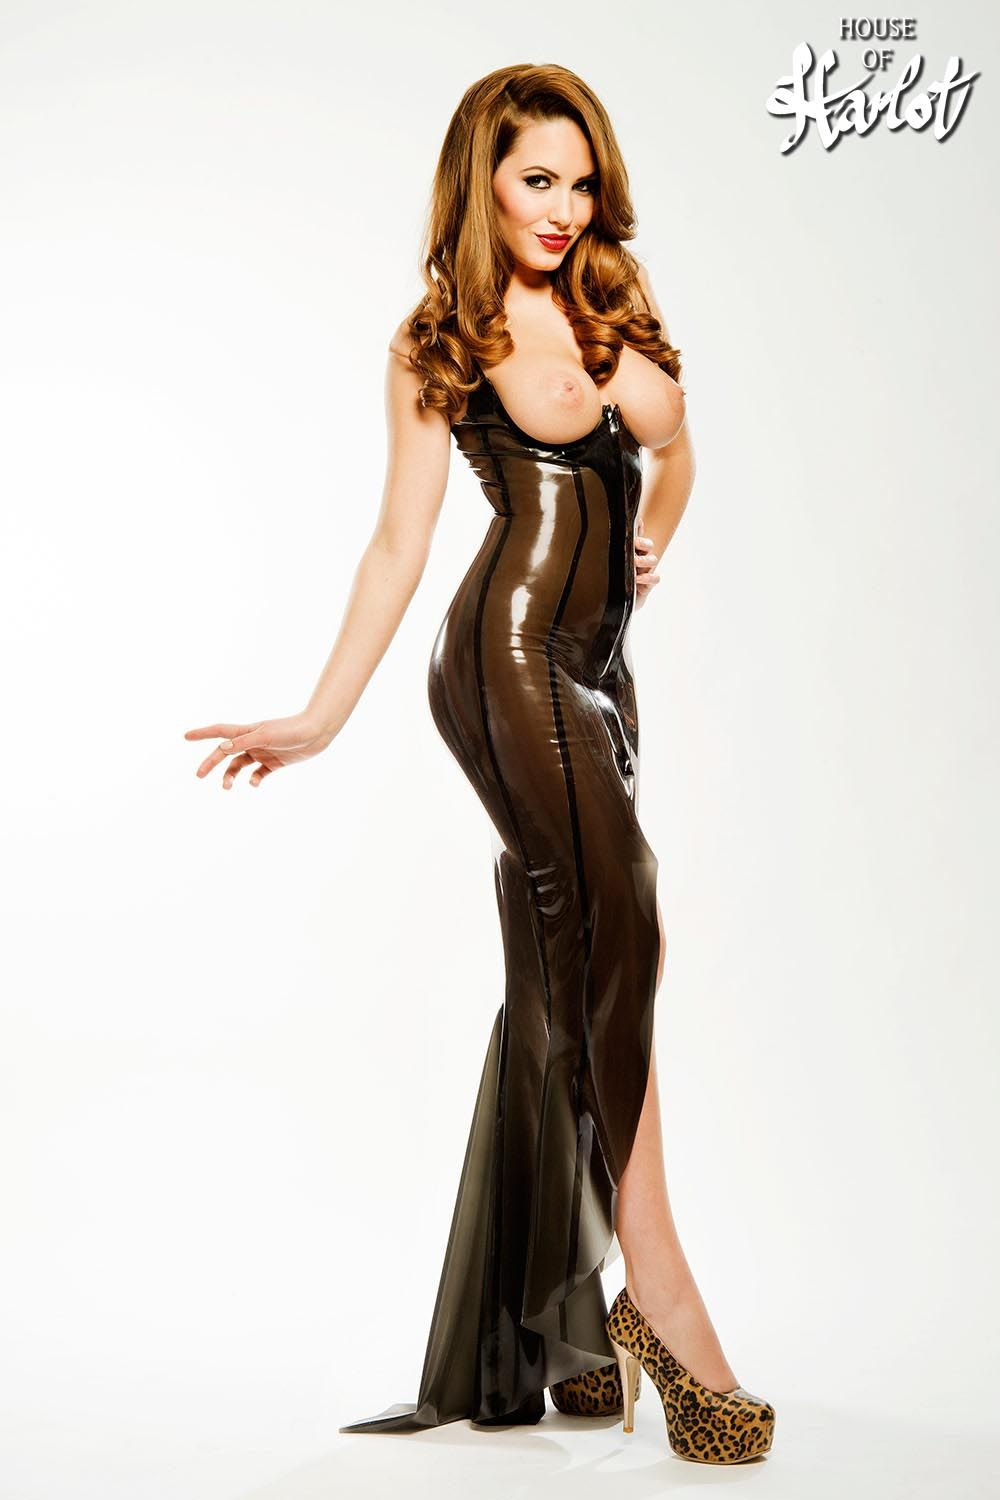 SABINA TOPLESS GOWN | LubeMeUp | Pinterest | Latex and Gowns